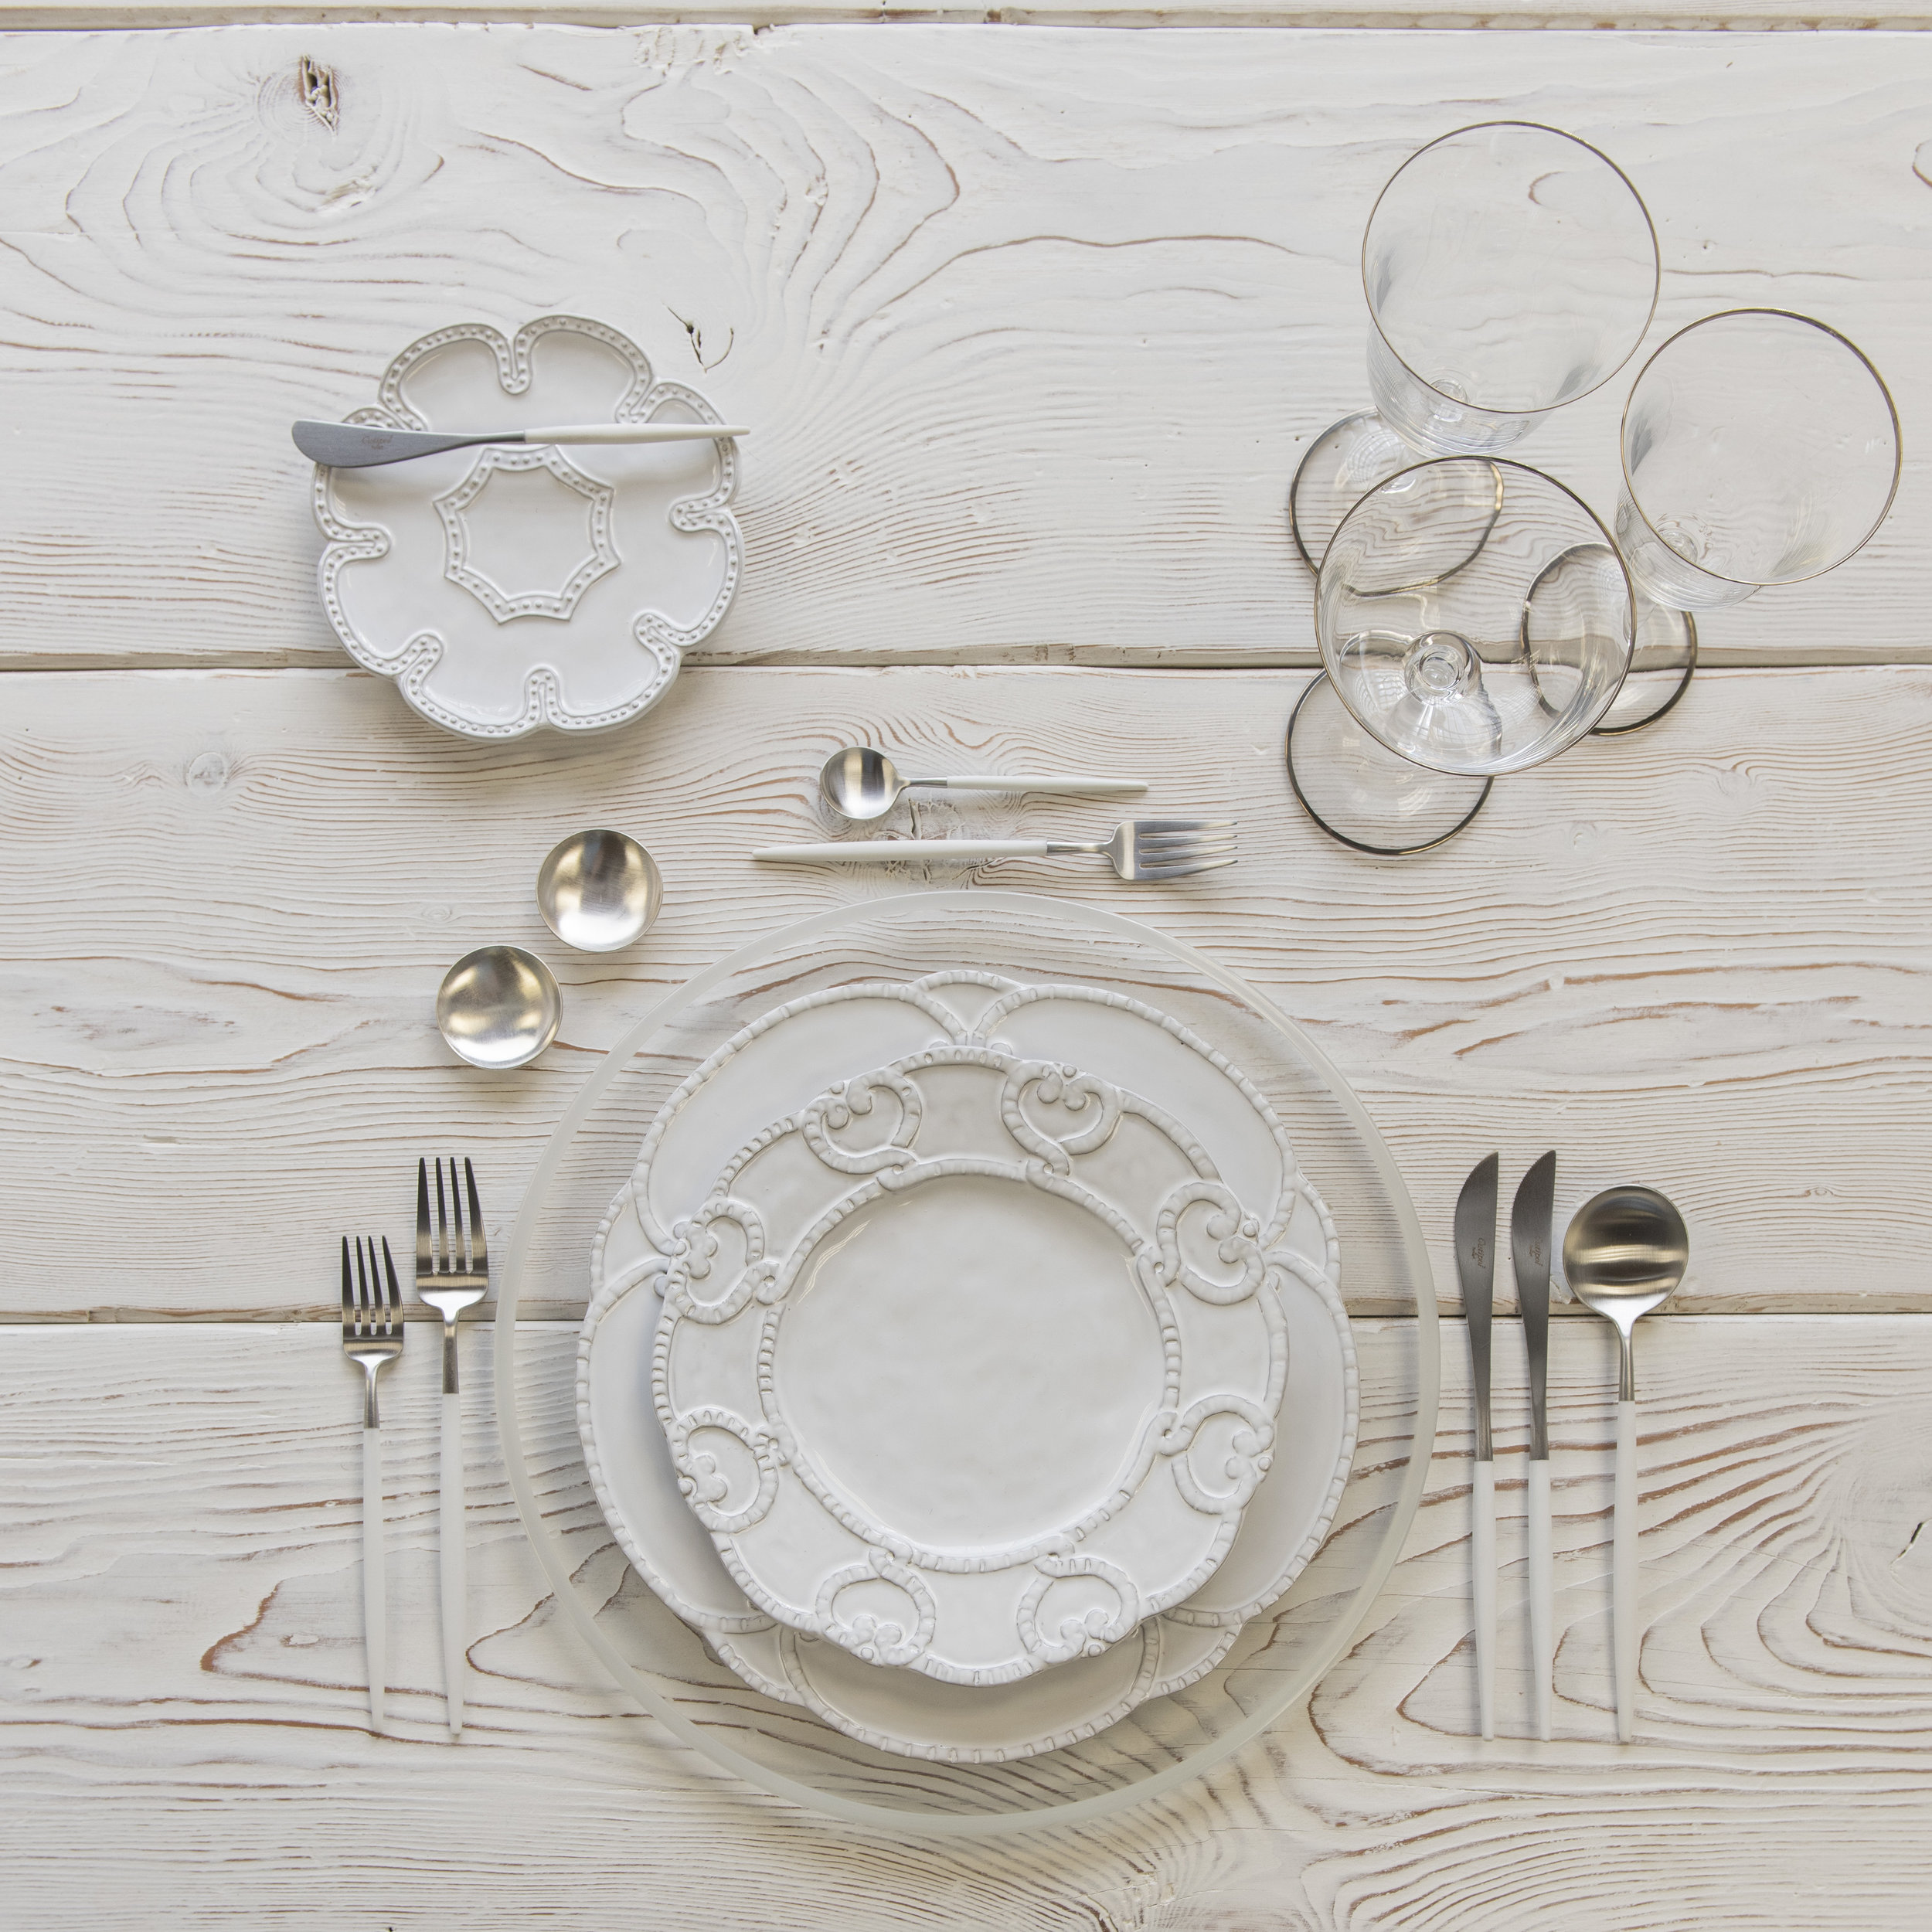 RENT: Halo Glass Chargers in Pearl + Signature Collection Dinnerware + Goa Flatware in Brushed Steel/White + Chloe Platinum Rimmed Stemware + Silver Salt Cellars  SHOP:Halo Glass Chargers in Pearl + Goa Flatware in Brushed Steel/White + Chloe Platinum Rimmed Stemware